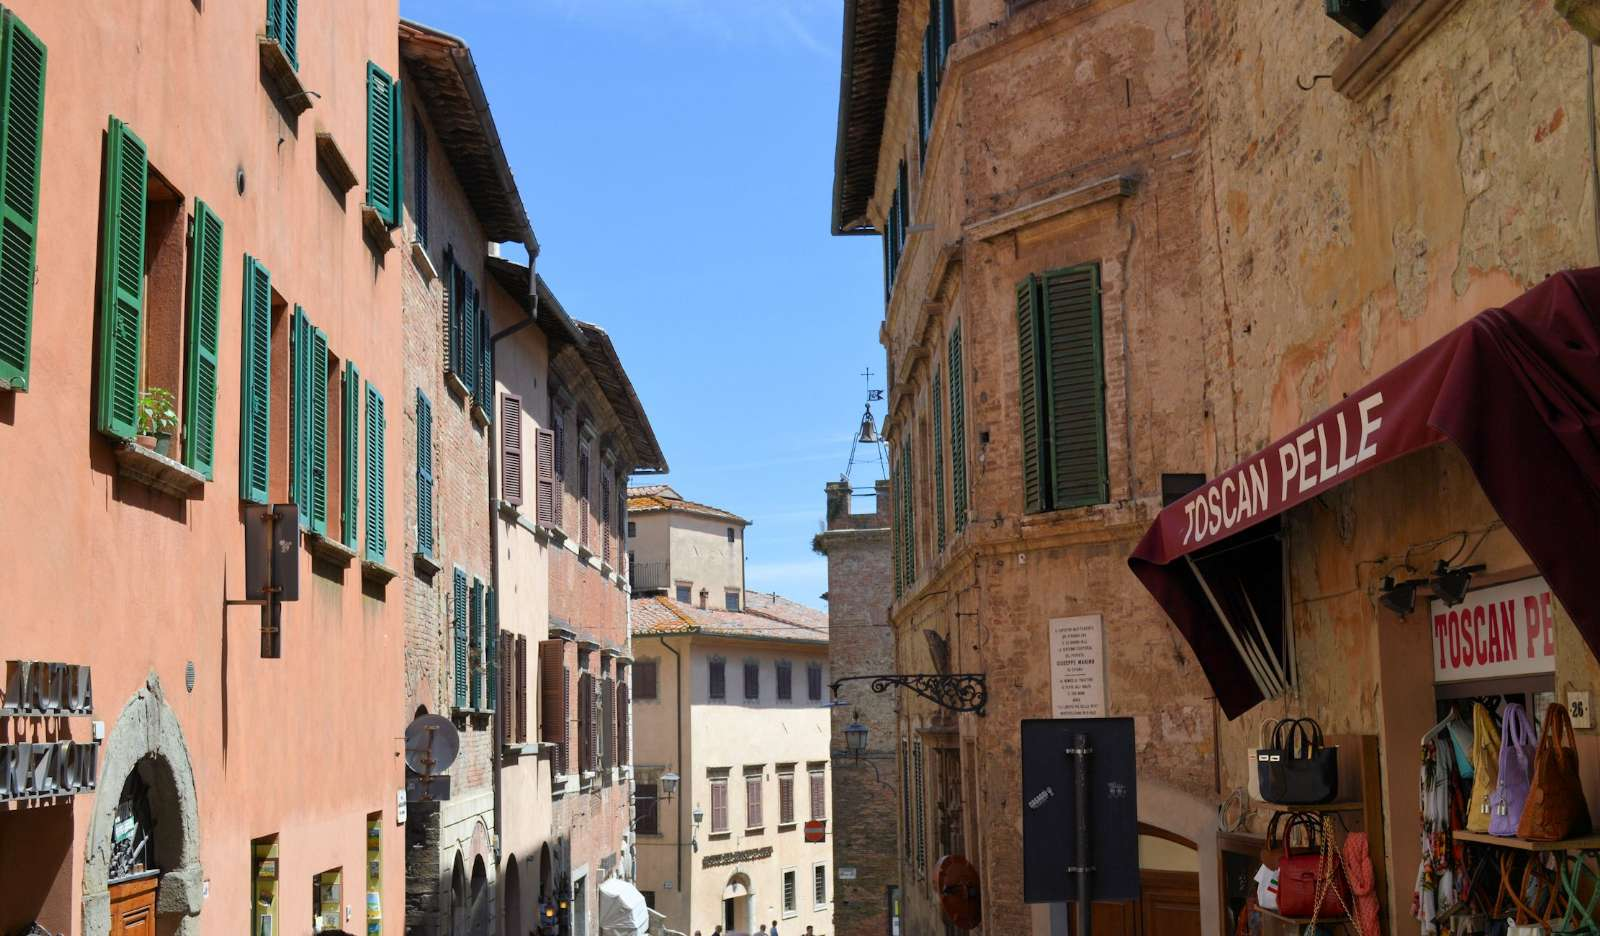 Streets in Montepulciano